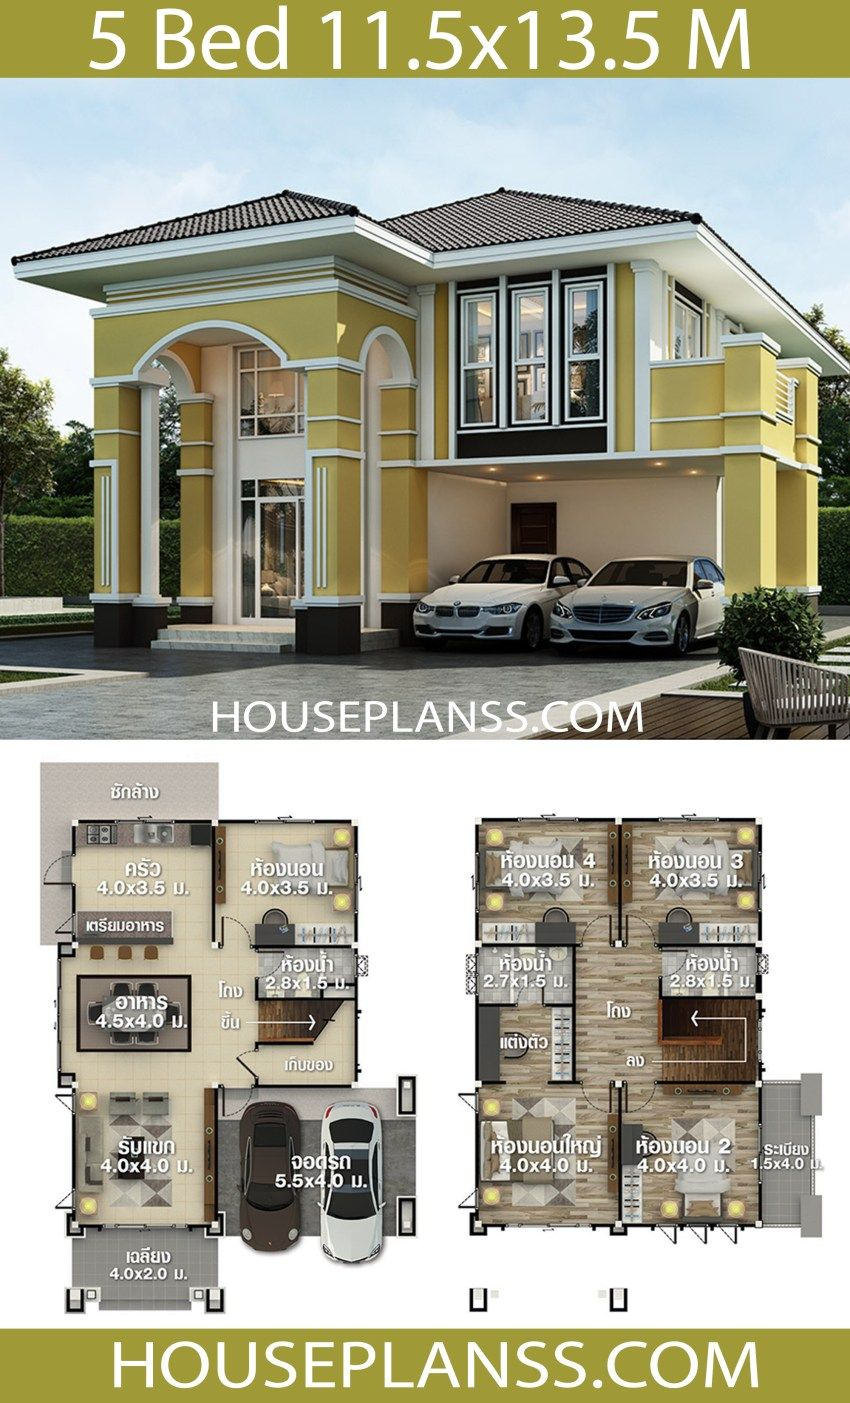 House Plans Idea 11 5x13 5 With 5 Bedrooms House Plans S House Construction Plan House Plans Mansion Beautiful House Plans